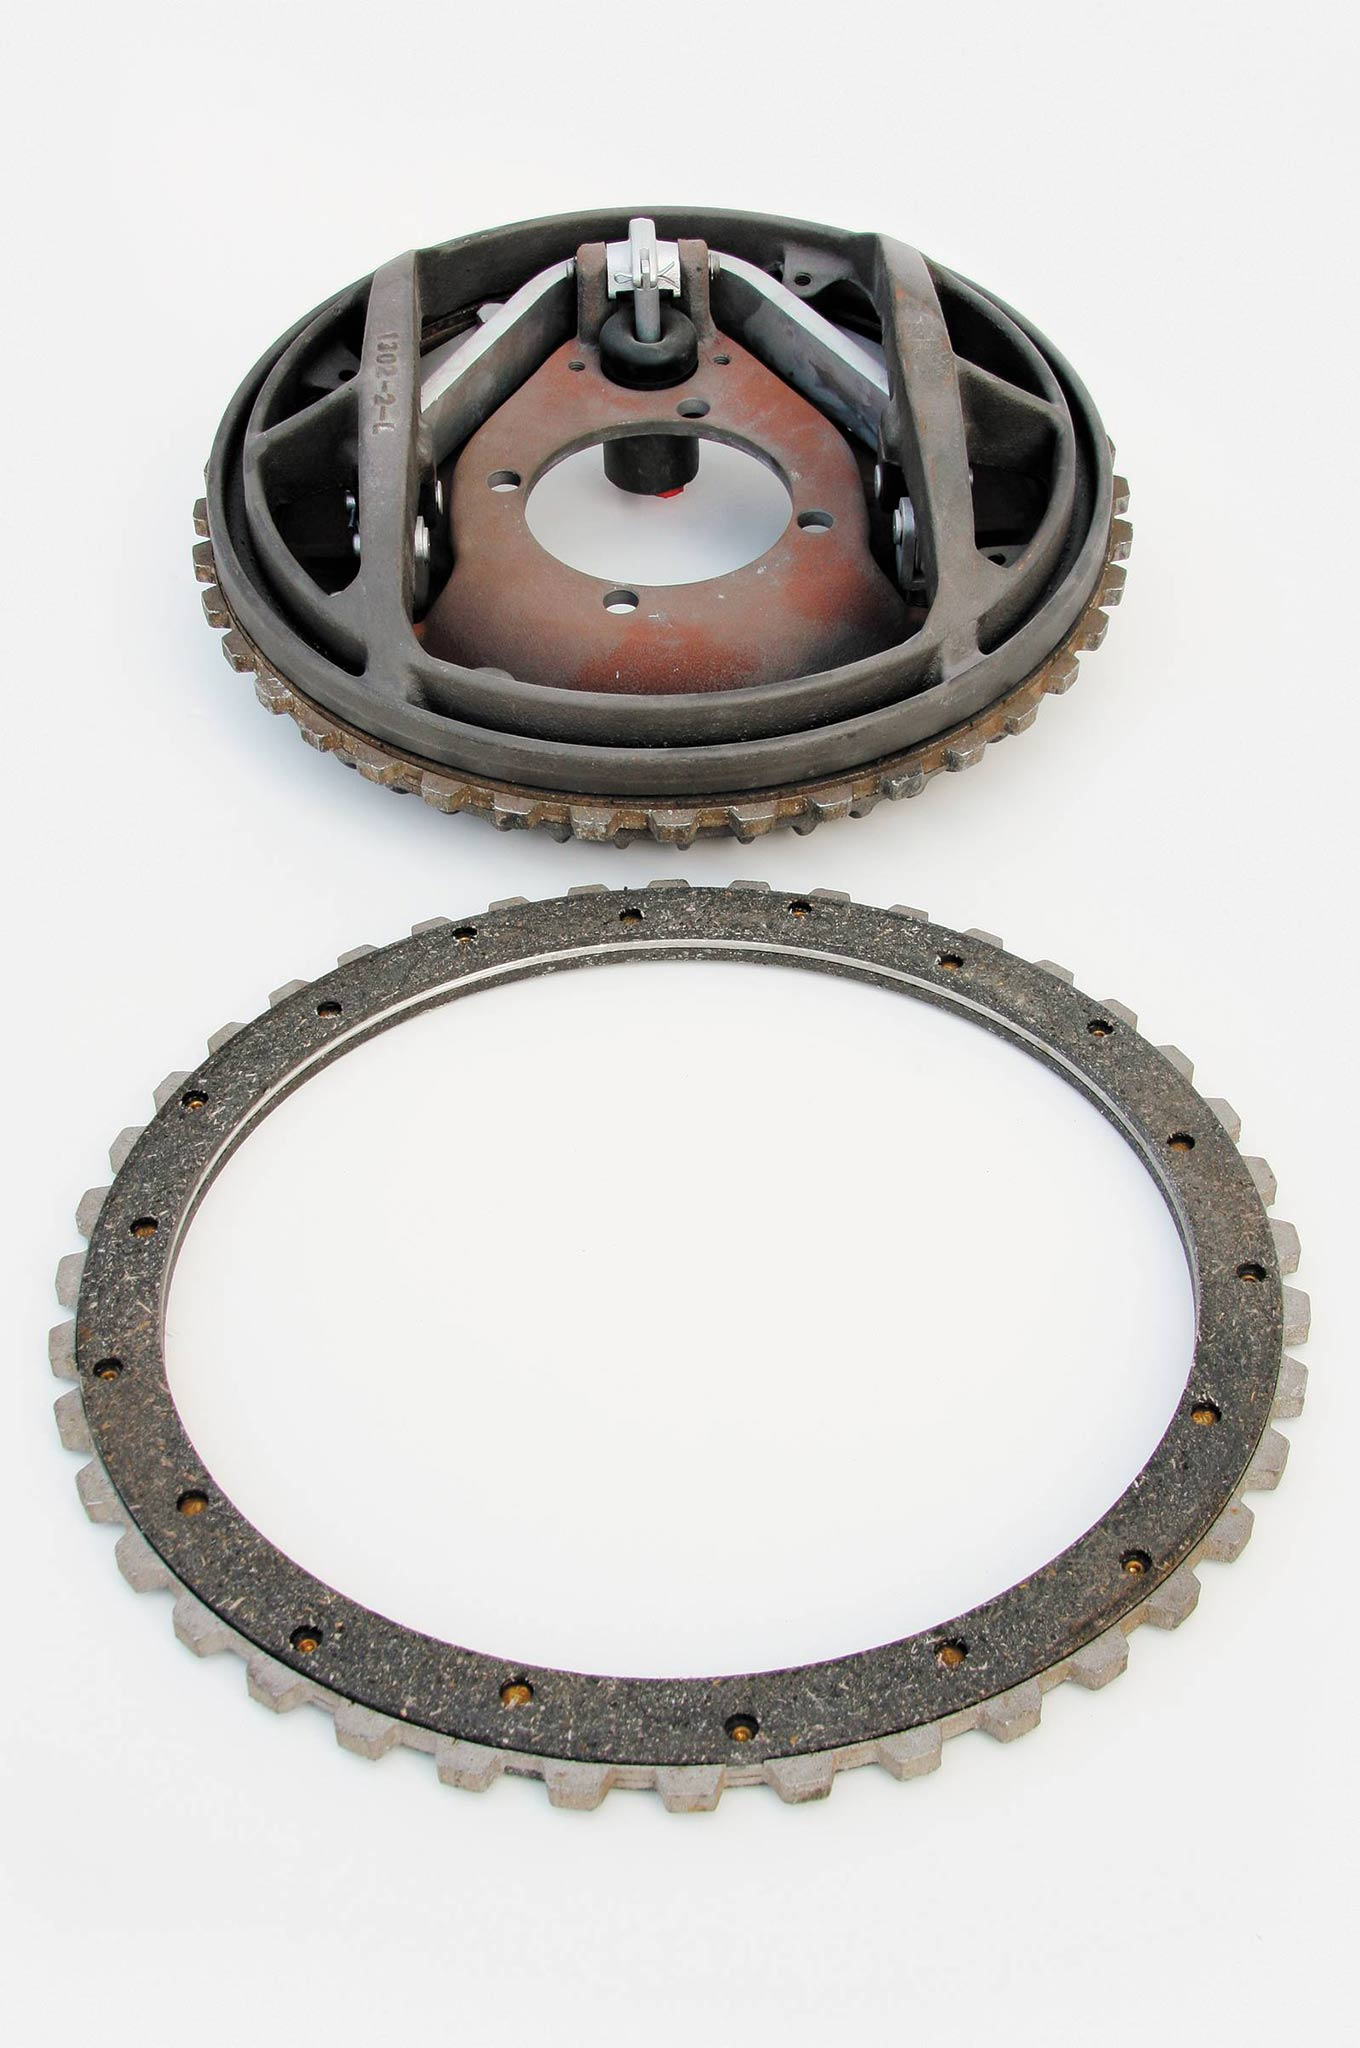 """The friction pad (lower part of the photo) runs completely around the magnesium disc on both sides. There's twice as much brake lining here than on conventional Ford hydraulic brake shoes of the period, for 360-degree contact, and there are no gaps, so when they're properly adjusted, the Kinmonts don't """"grab."""" The original lining was an asbestos composite material. Re-liners today use a modern friction material."""